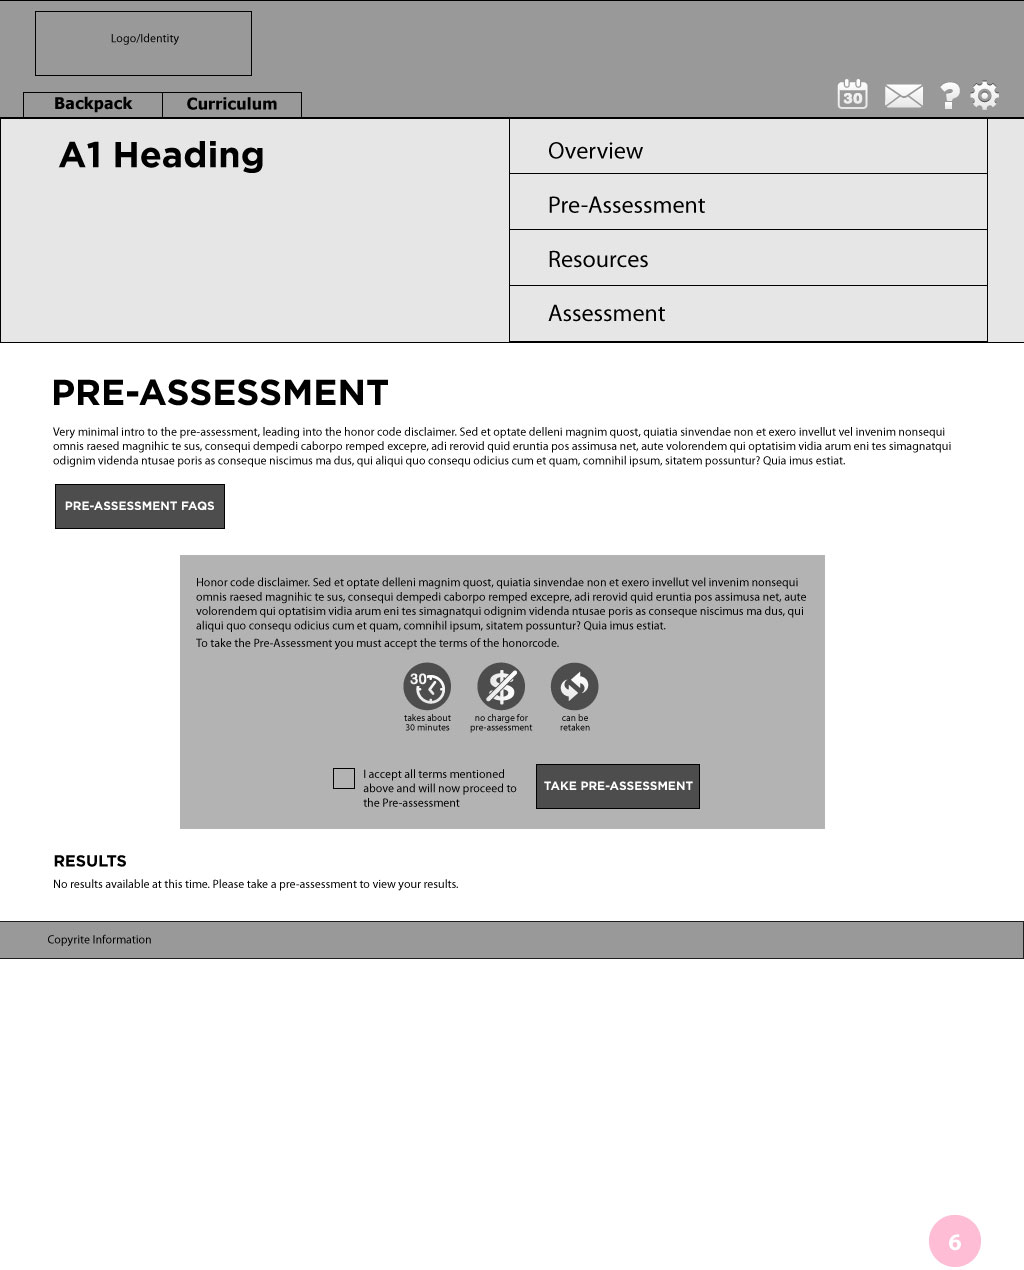 6_Wireframes_Preassessment